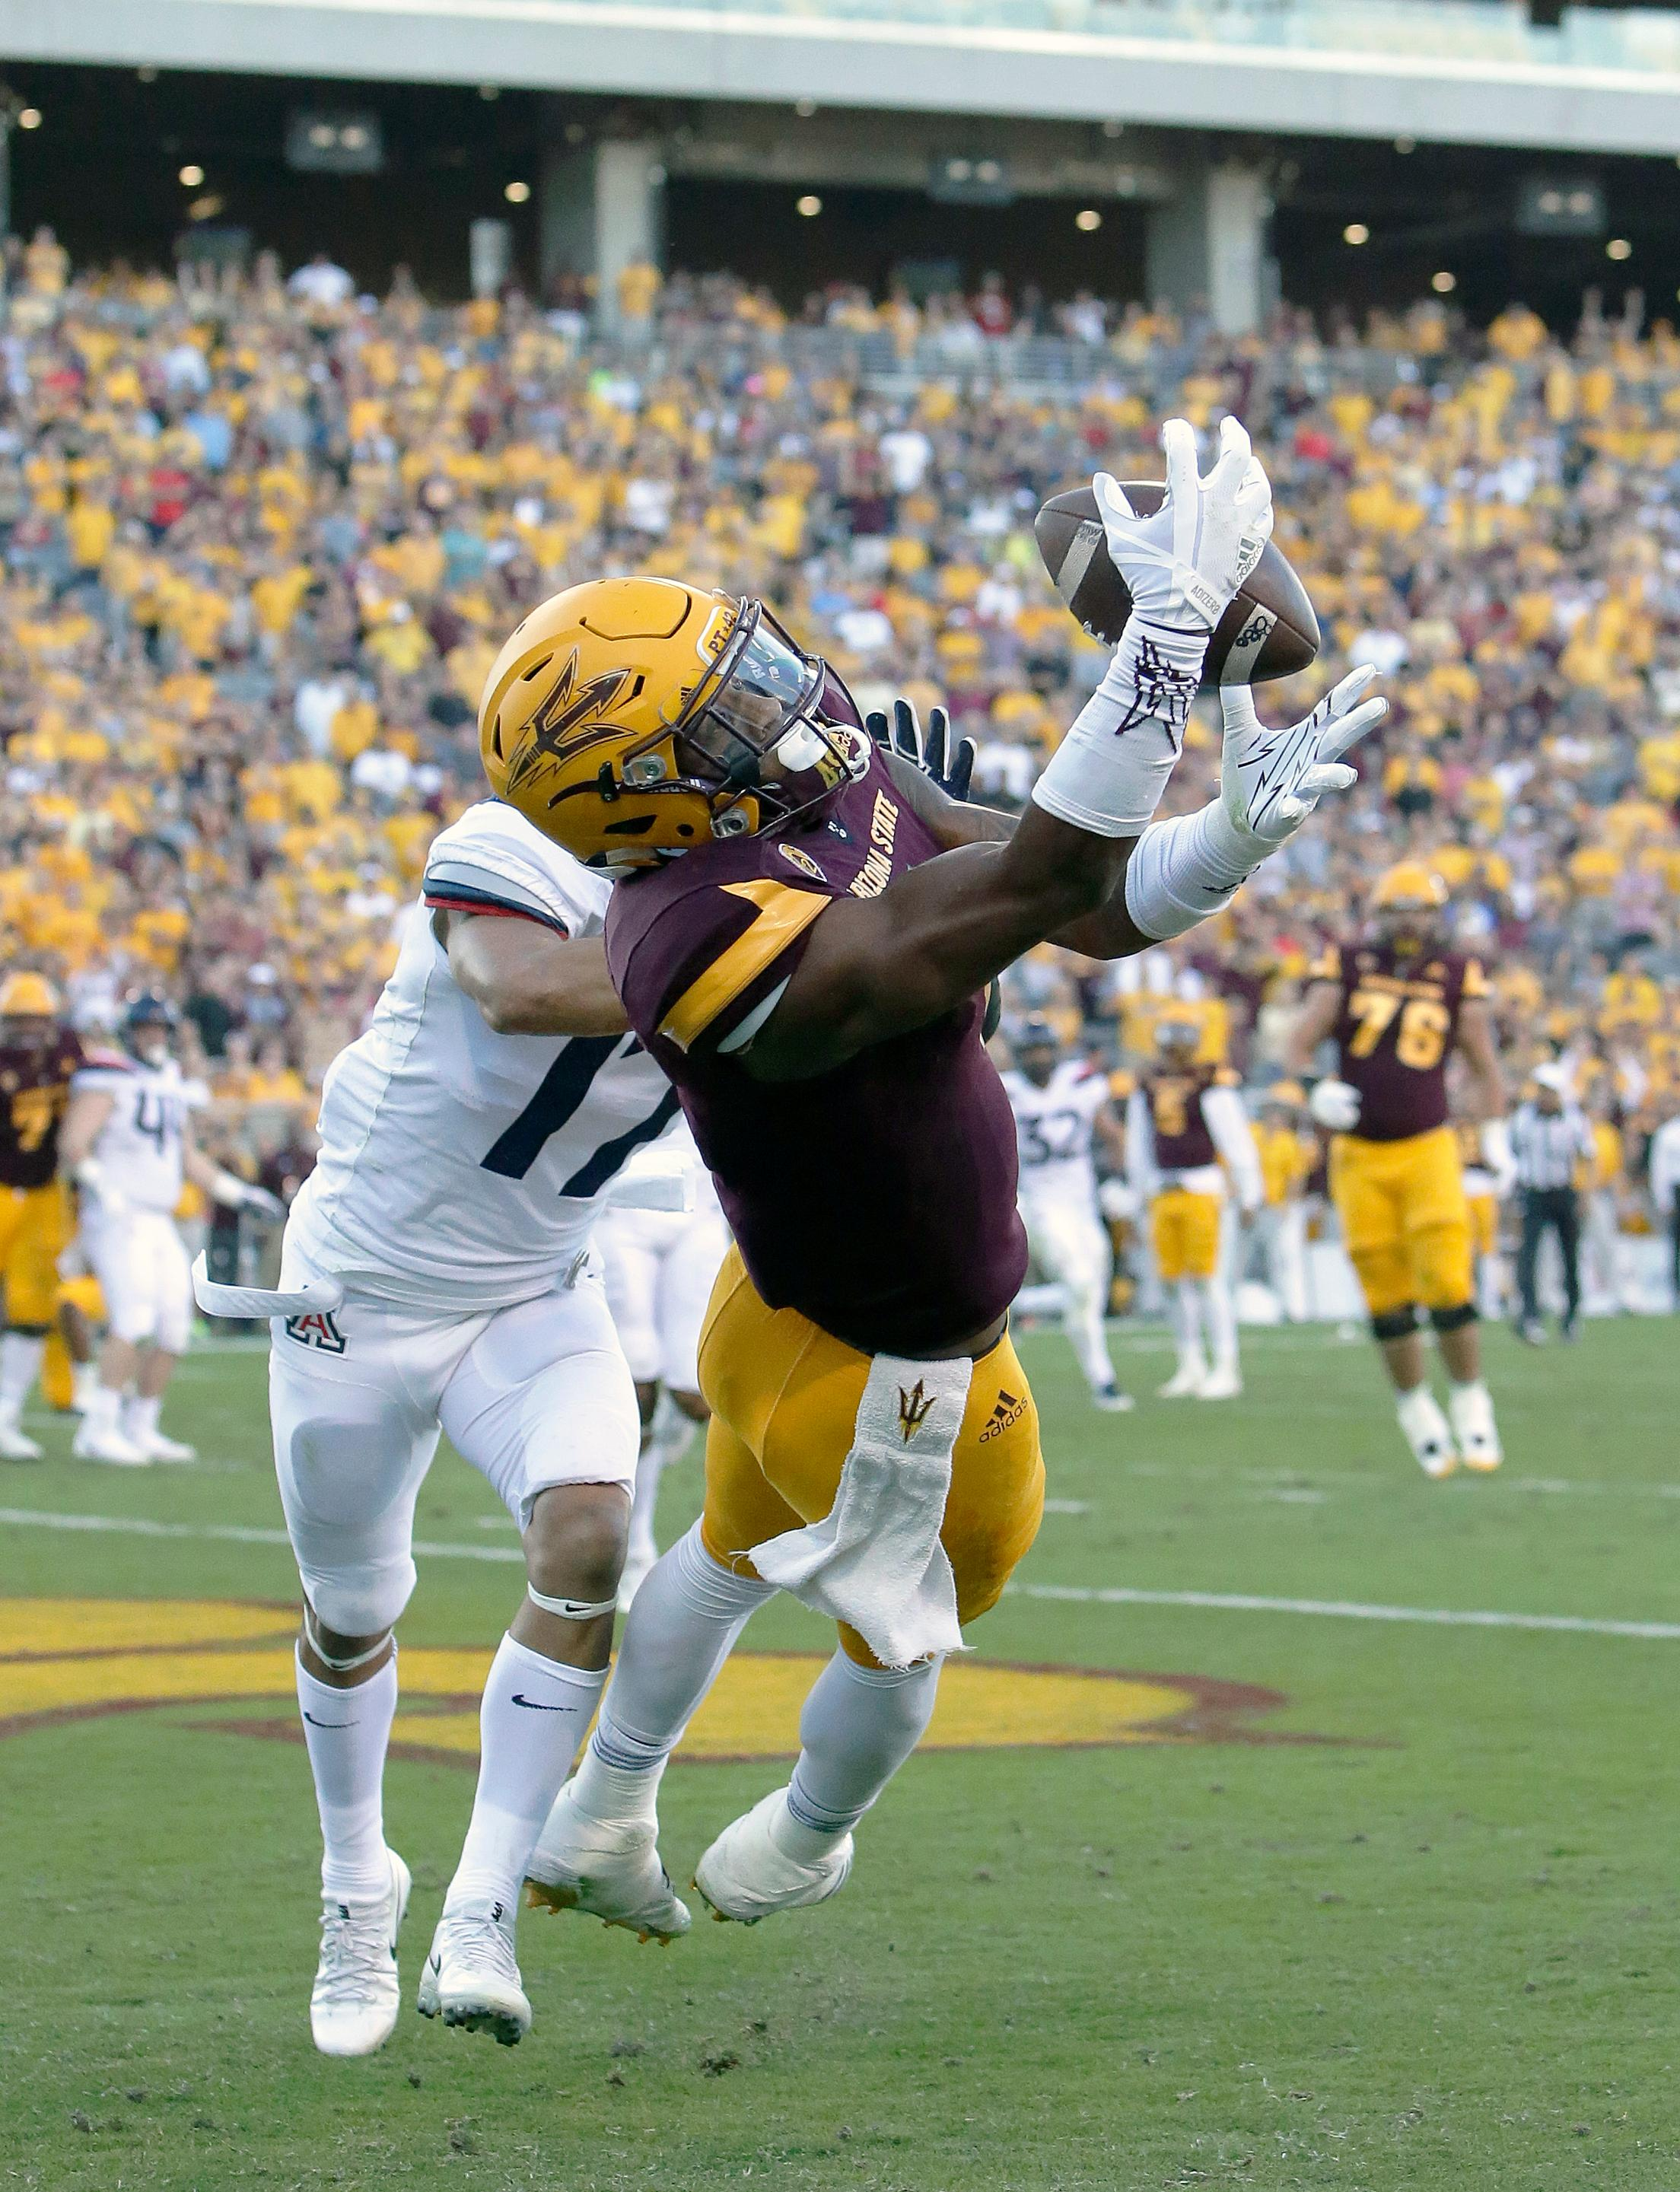 FILE - In this Nov. 25, 2017, file photo, Arizona State wide receiver N'Keal Harry (1) catches a touchdown pass in front of Arizona cornerback Jace Whittaker in the second half during an NCAA college football game, in Tempe, Ariz. Harry was selected to the AP All-Conference Pac-12 team announced Thursday, Dec. 7, 2017. (AP Photo/Rick Scuteri, File)